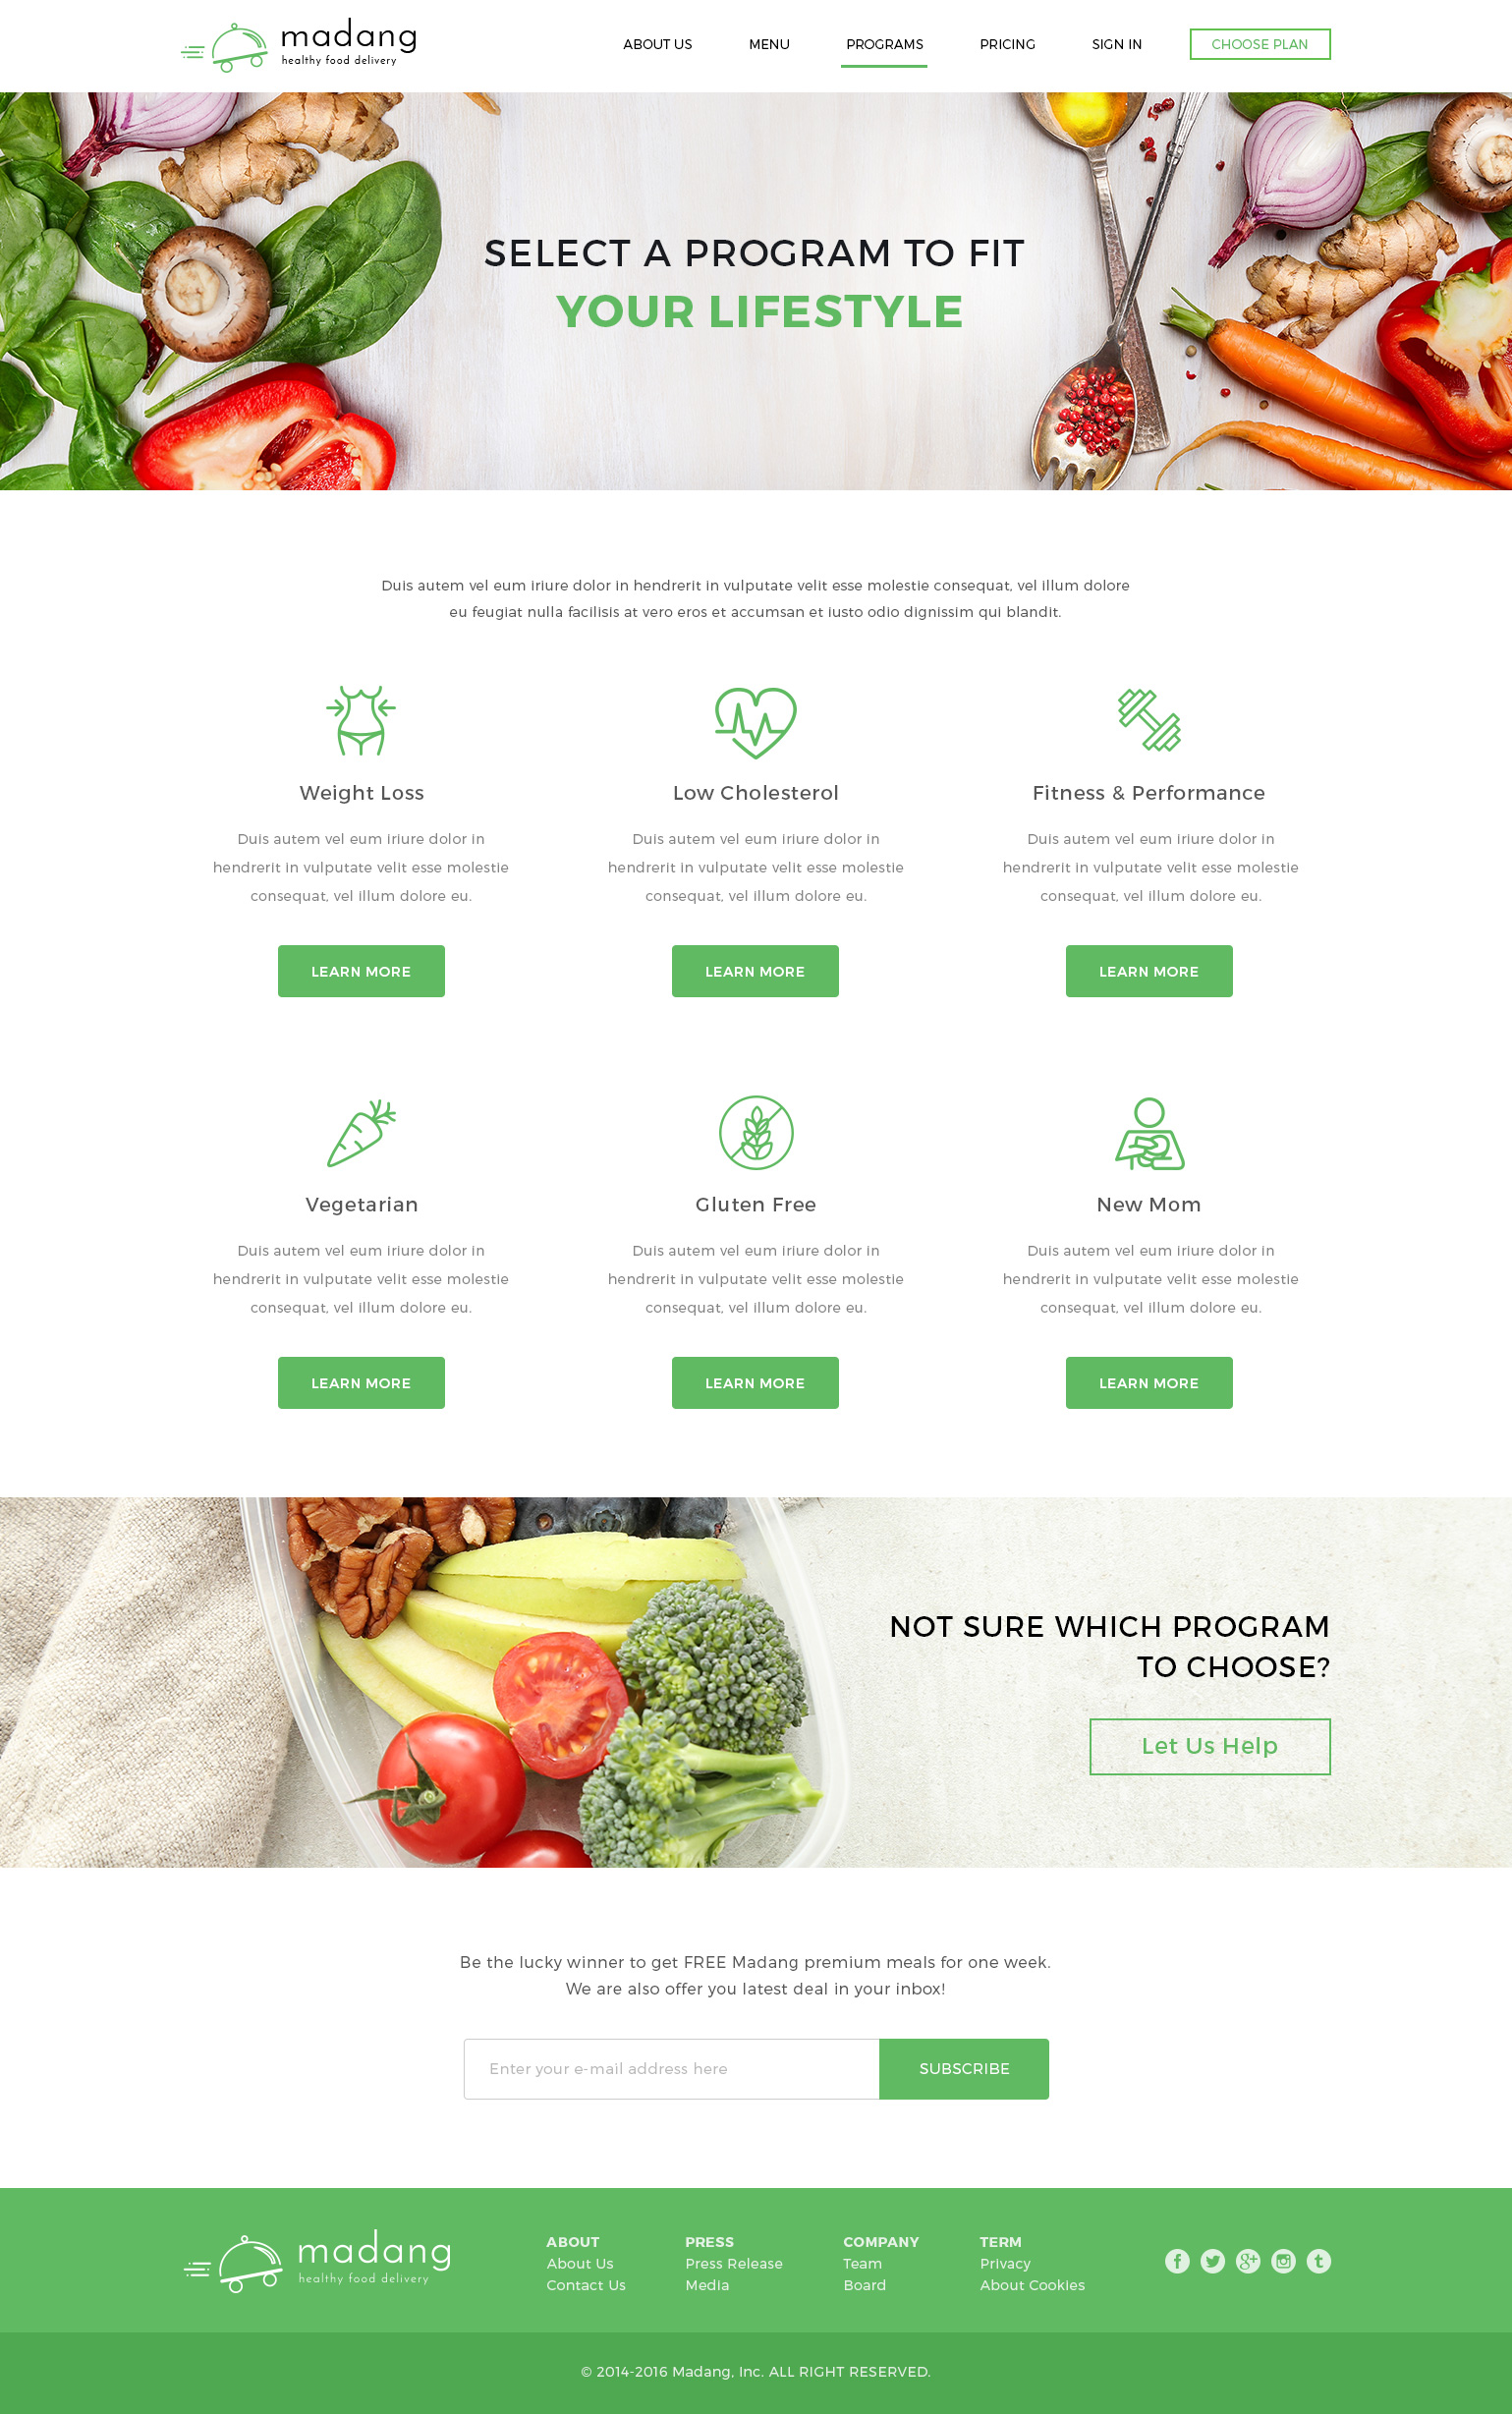 madang healthy food delivery psd template by peterdraw themeforest. Black Bedroom Furniture Sets. Home Design Ideas